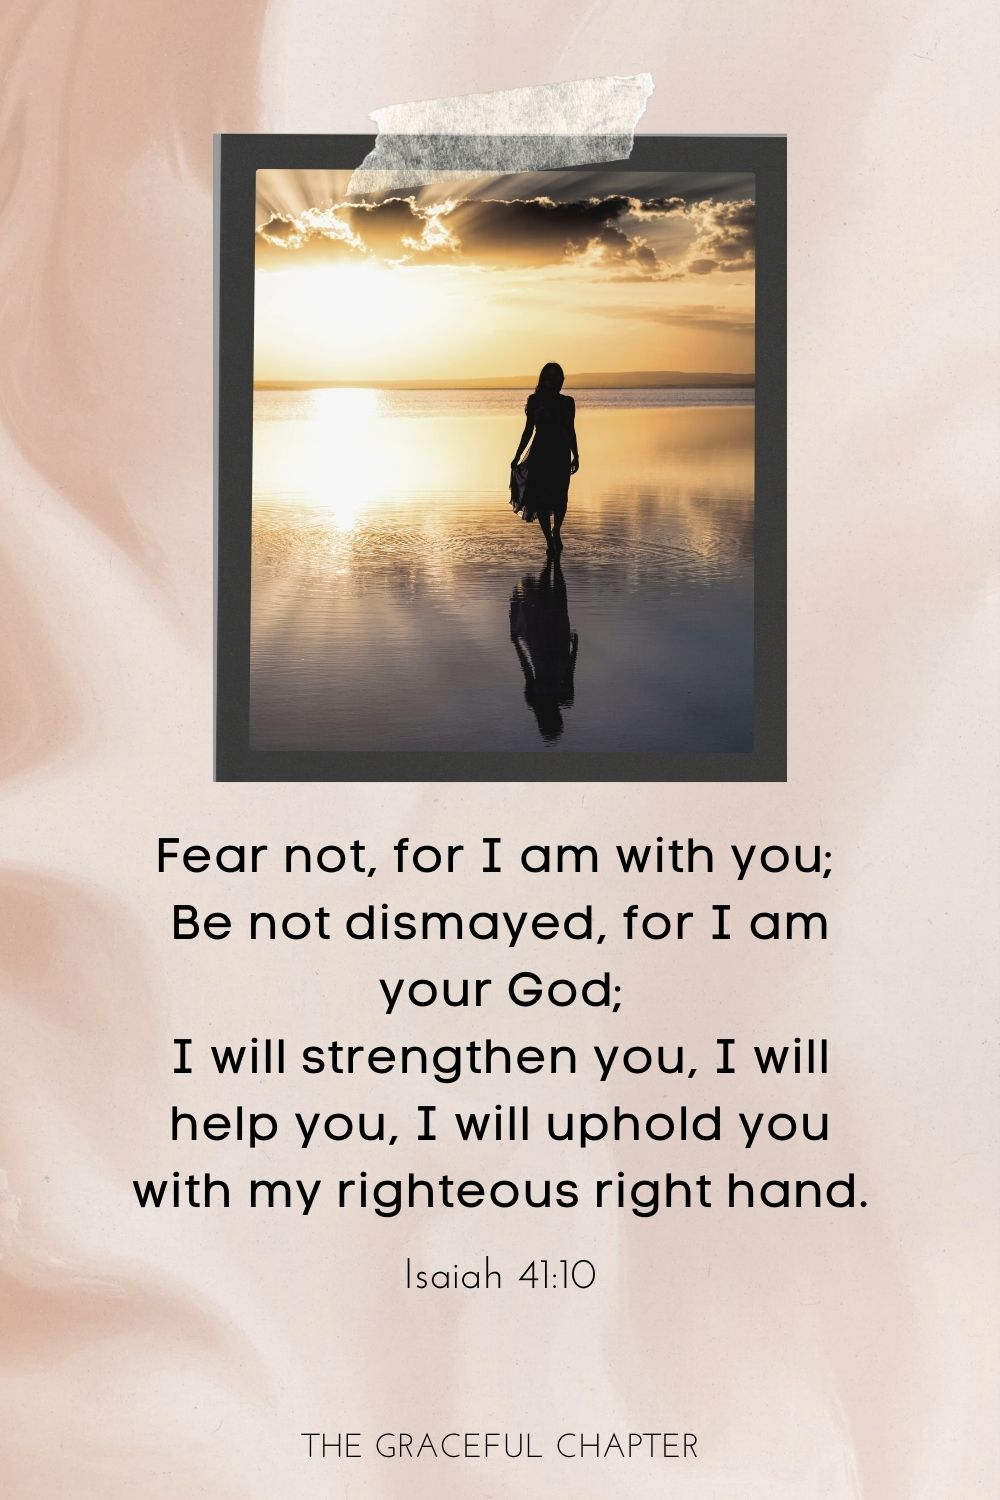 Fear not, for I am with you; be not dismayed, for I am your God; I will strengthen you, I will help you, I will uphold you with my righteous right hand. Isaiah 41:10